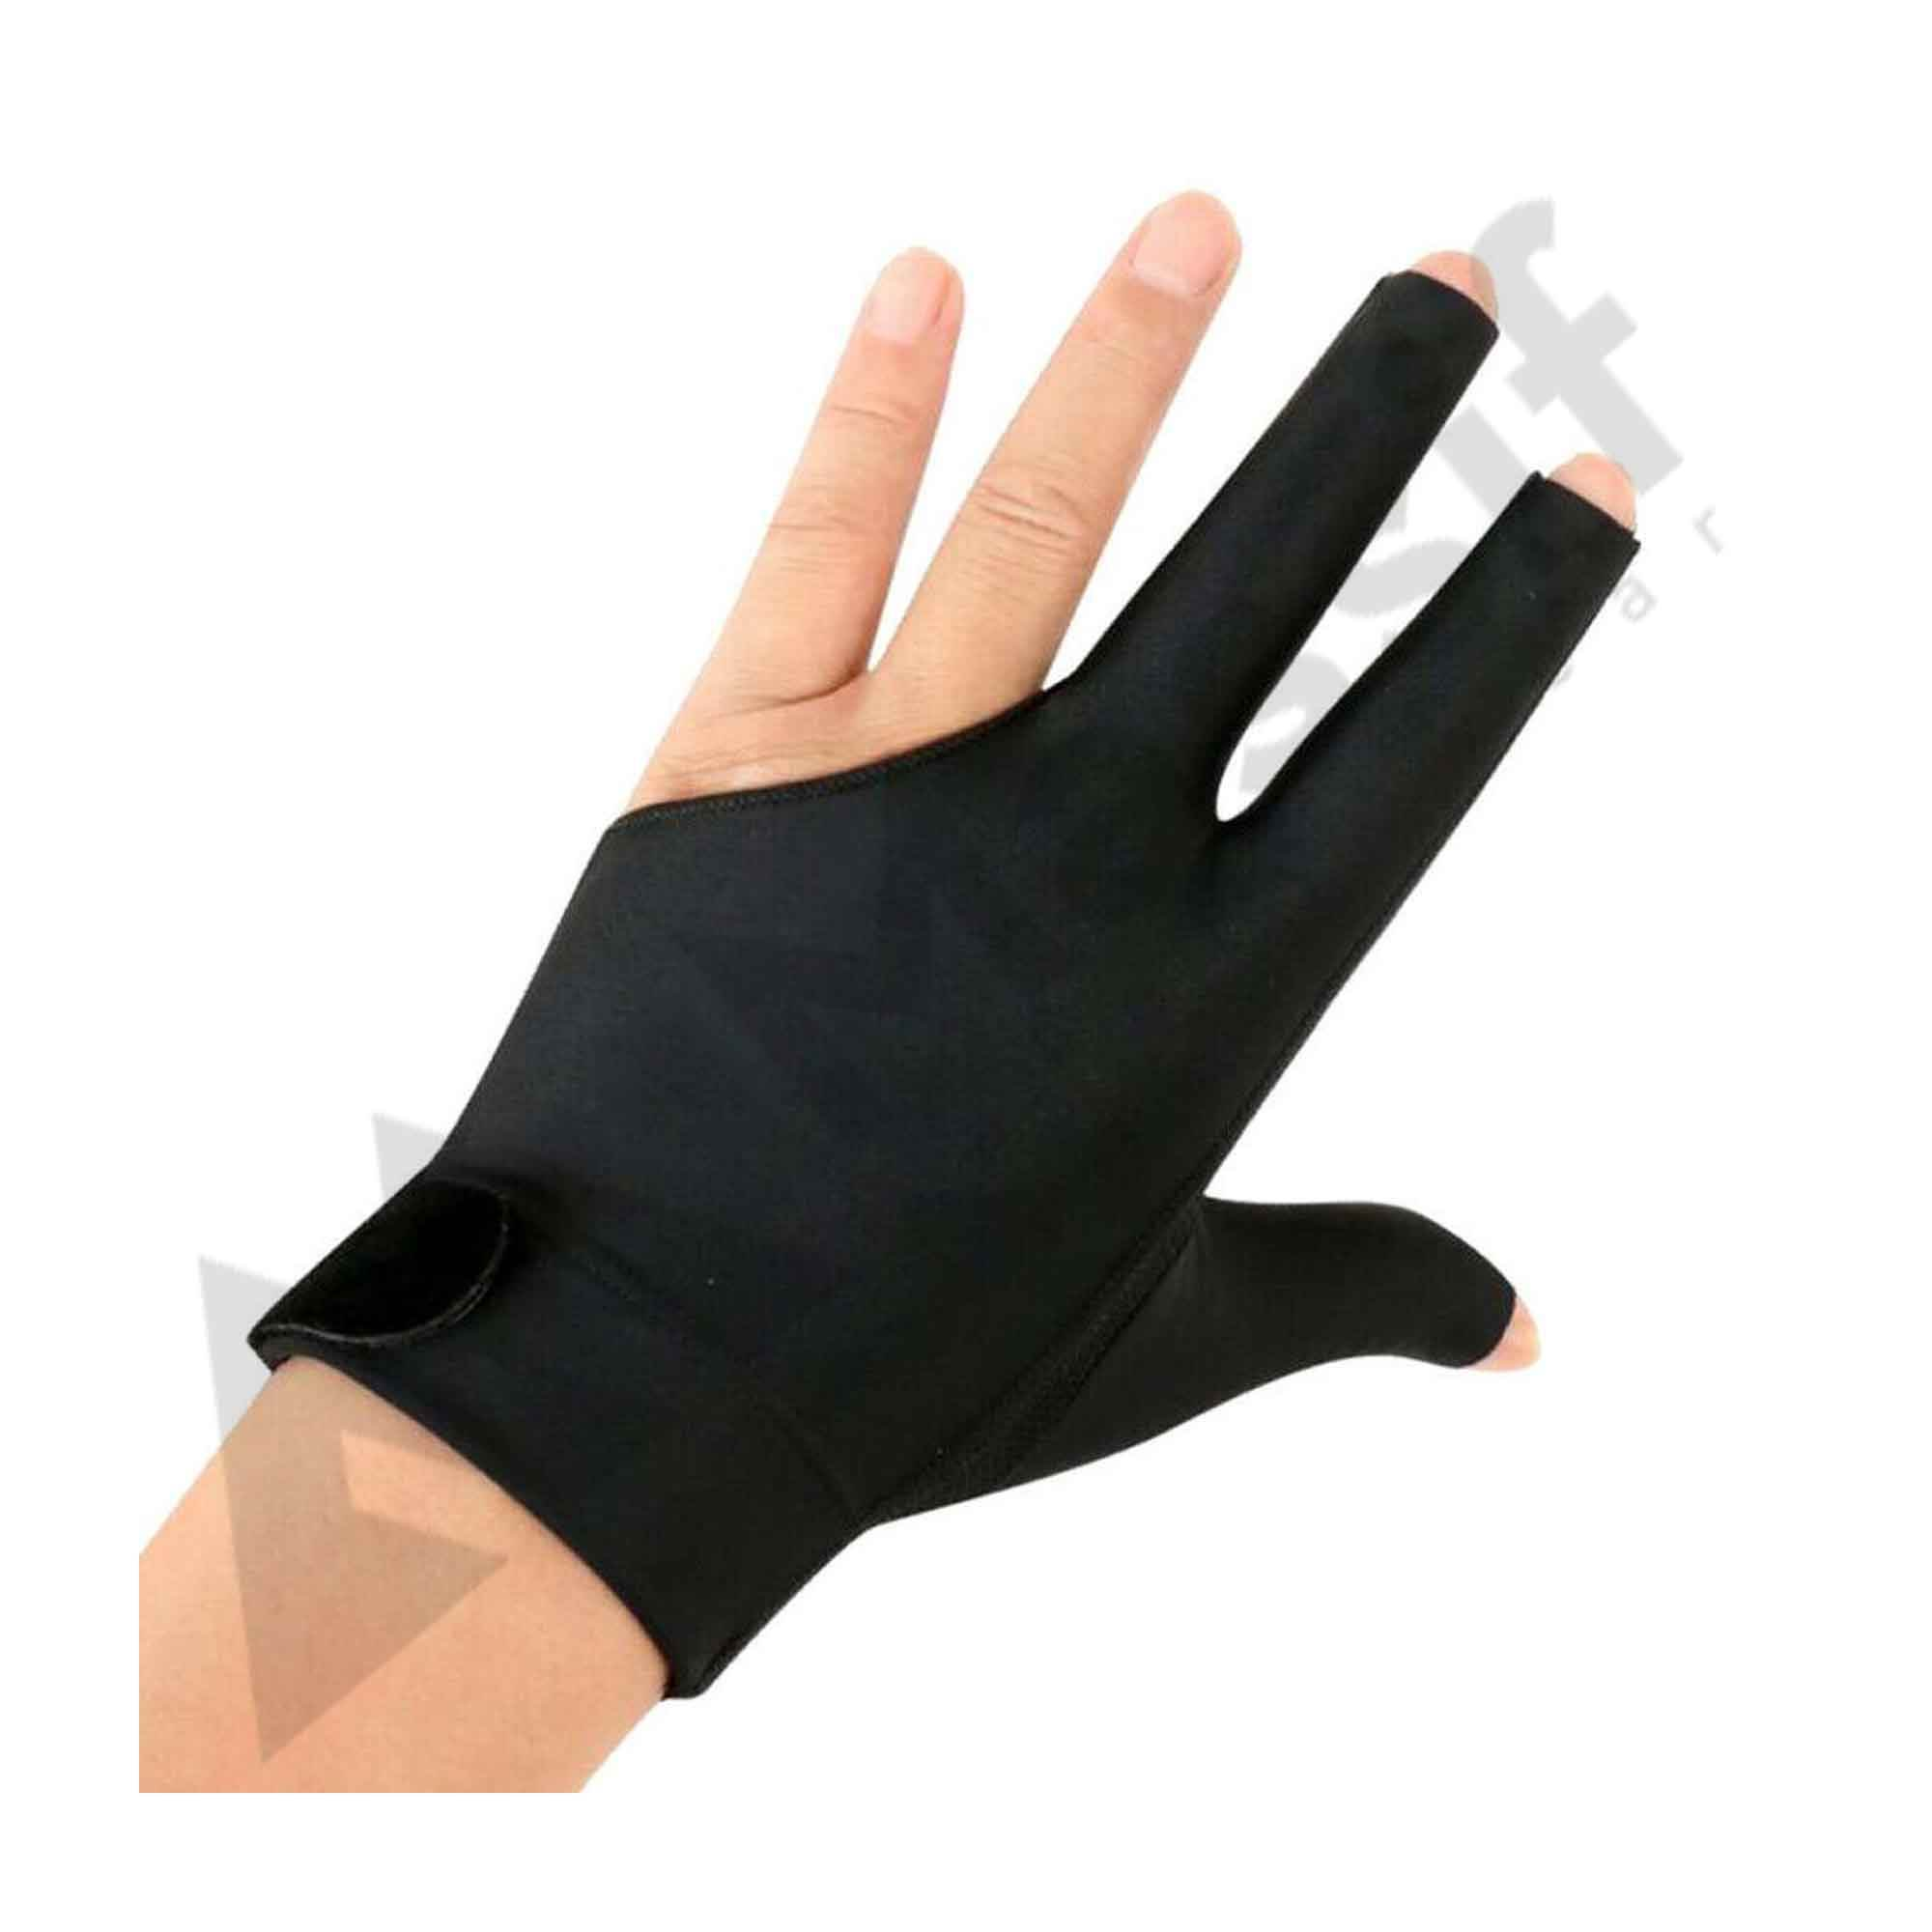 Fingerless Billiards -Glove Professional Billiard Accessories in Different Colors